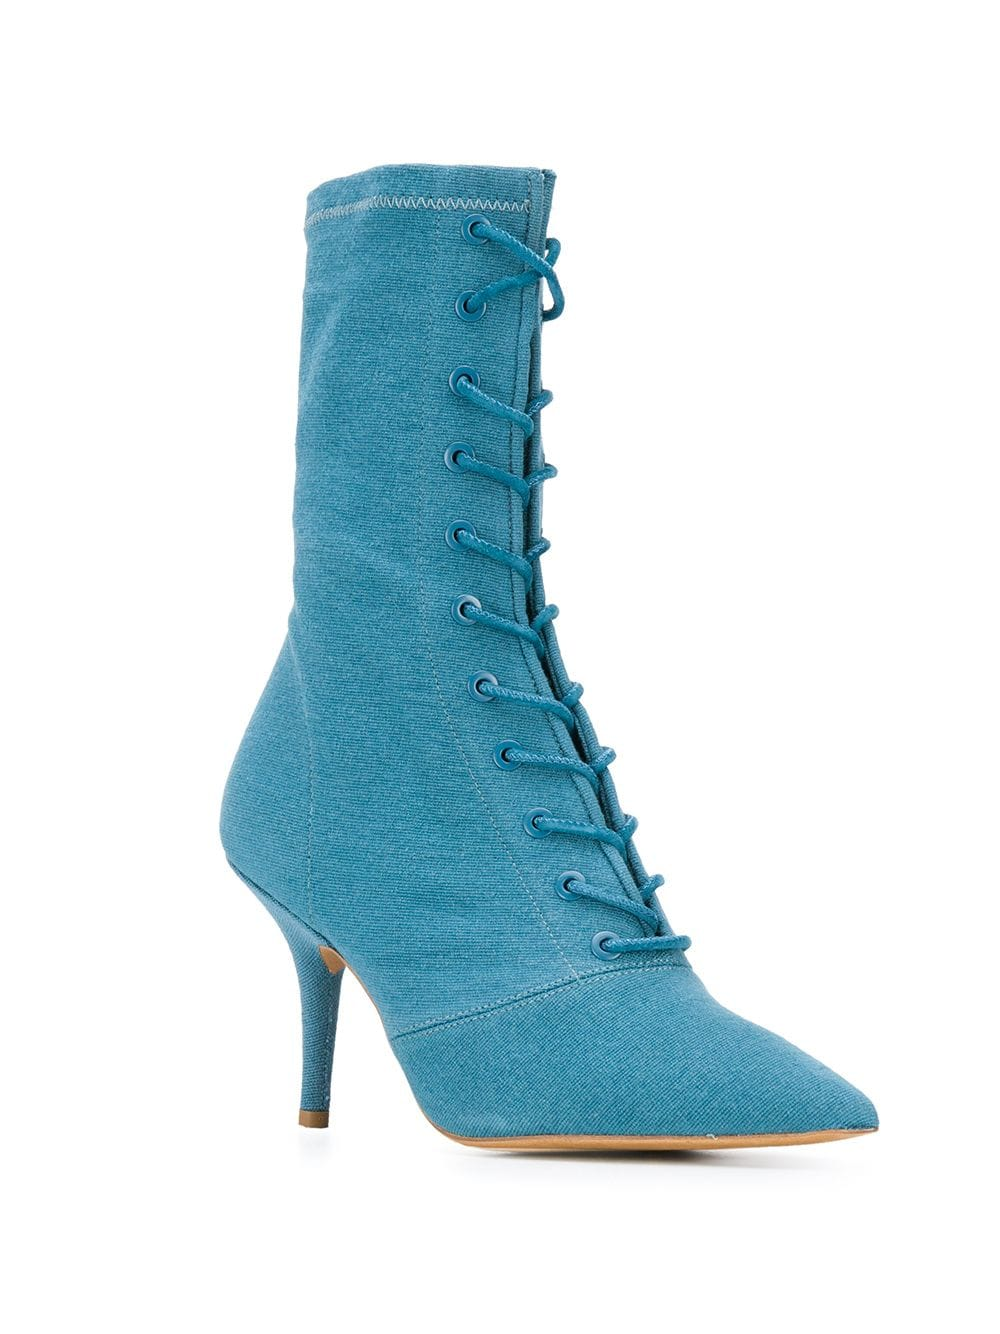 Yeezy 95 lace-up ankle boots - Blue